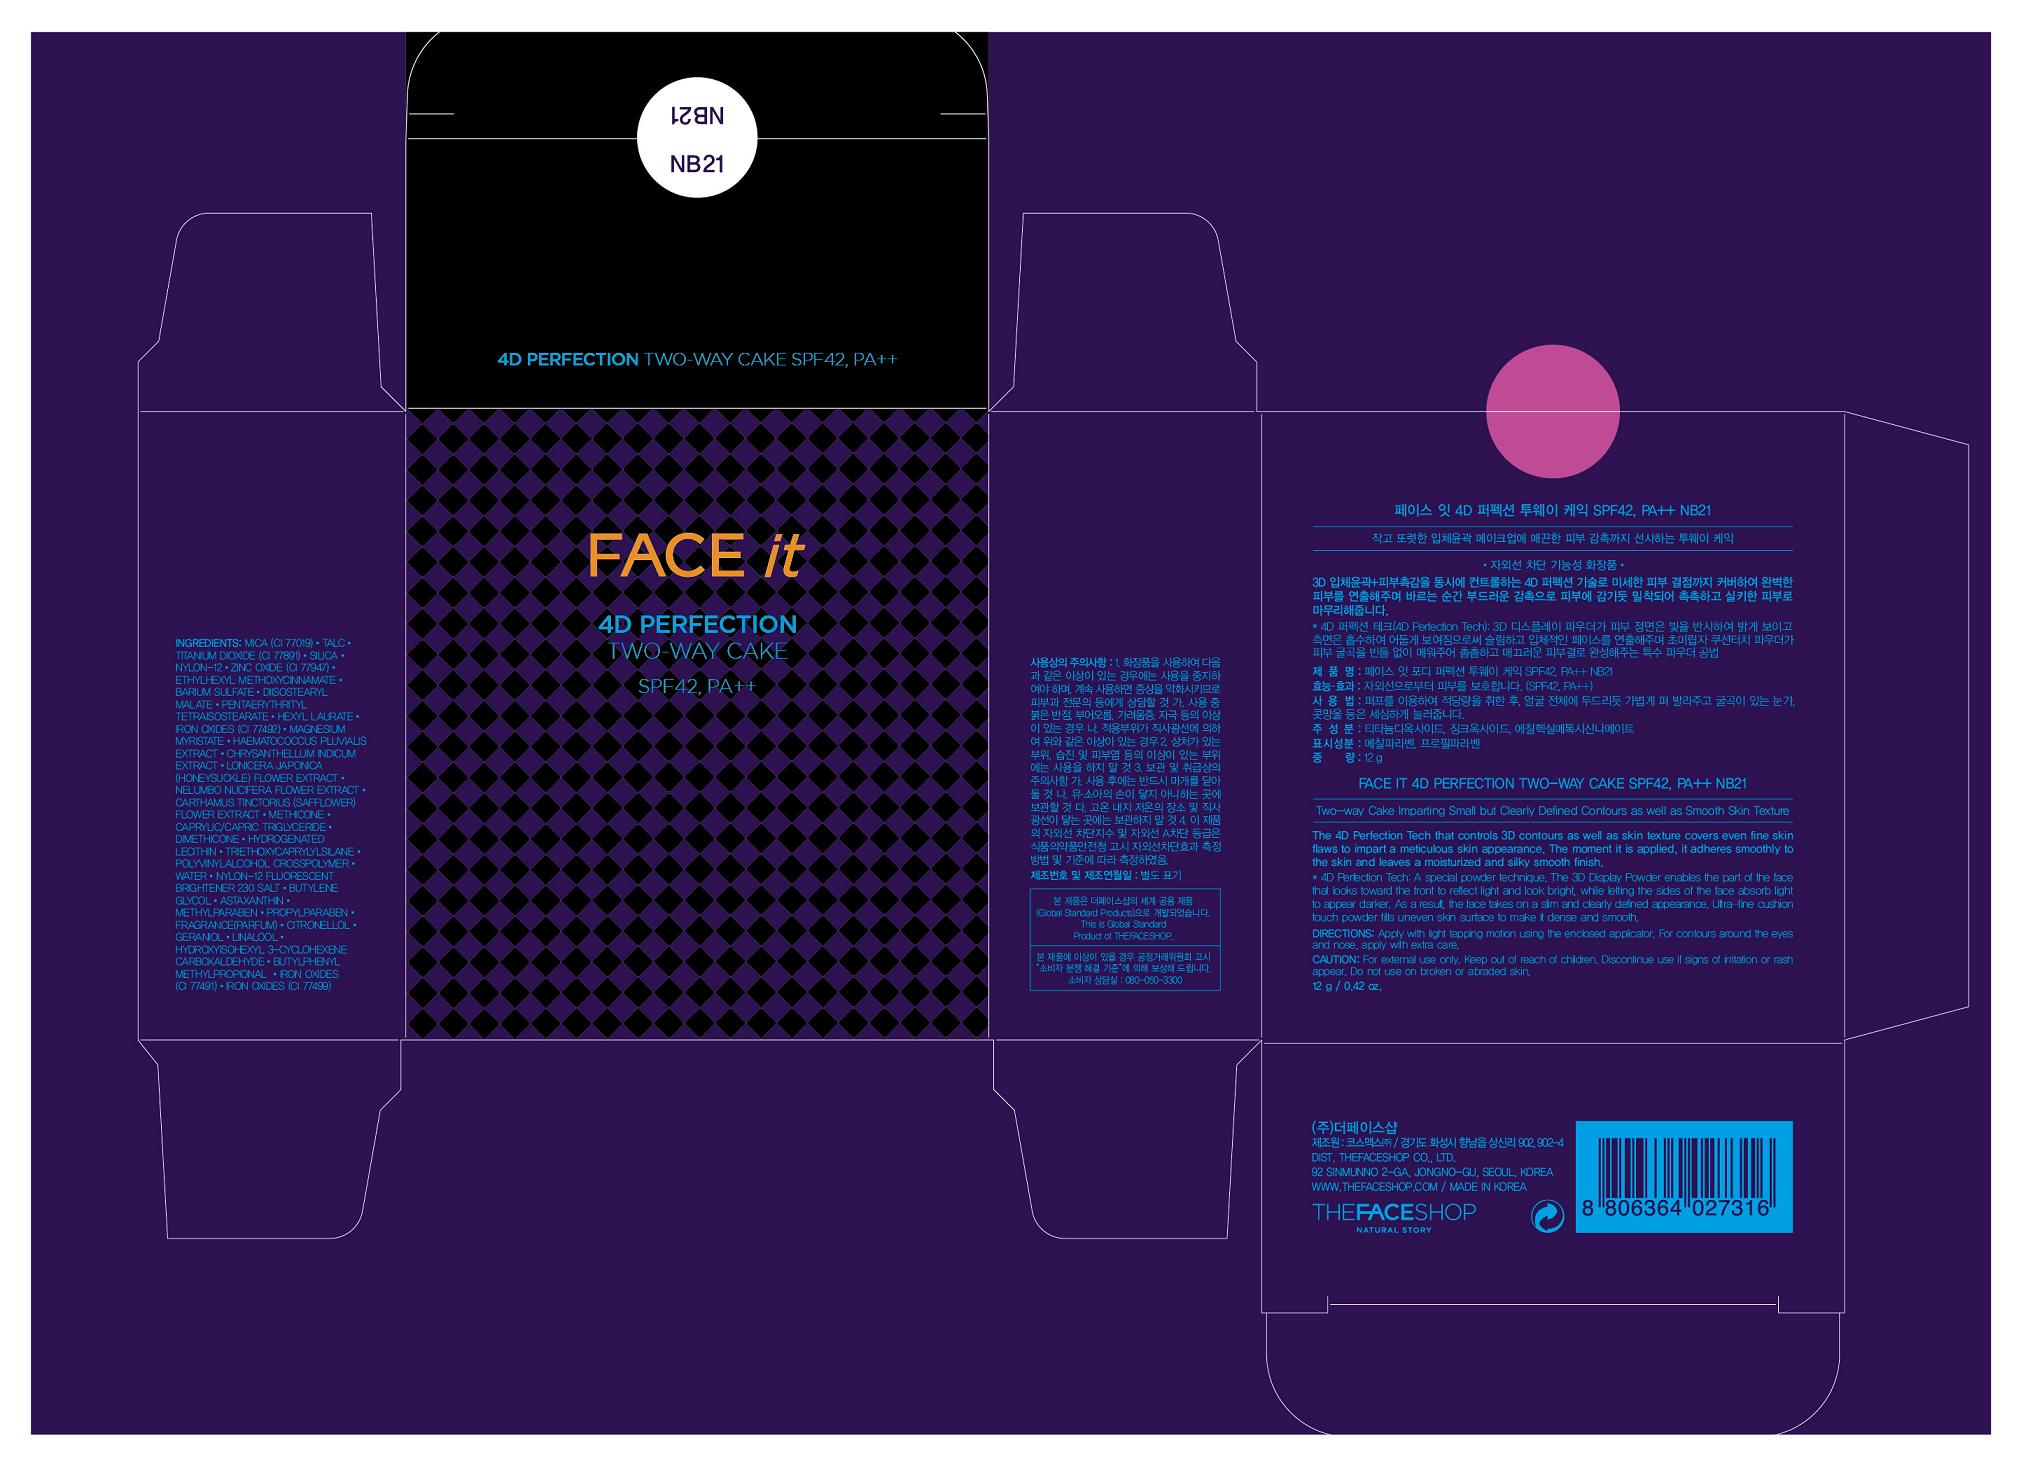 FACE IT 4D PERPECT TWO-WAY CAKE NB21